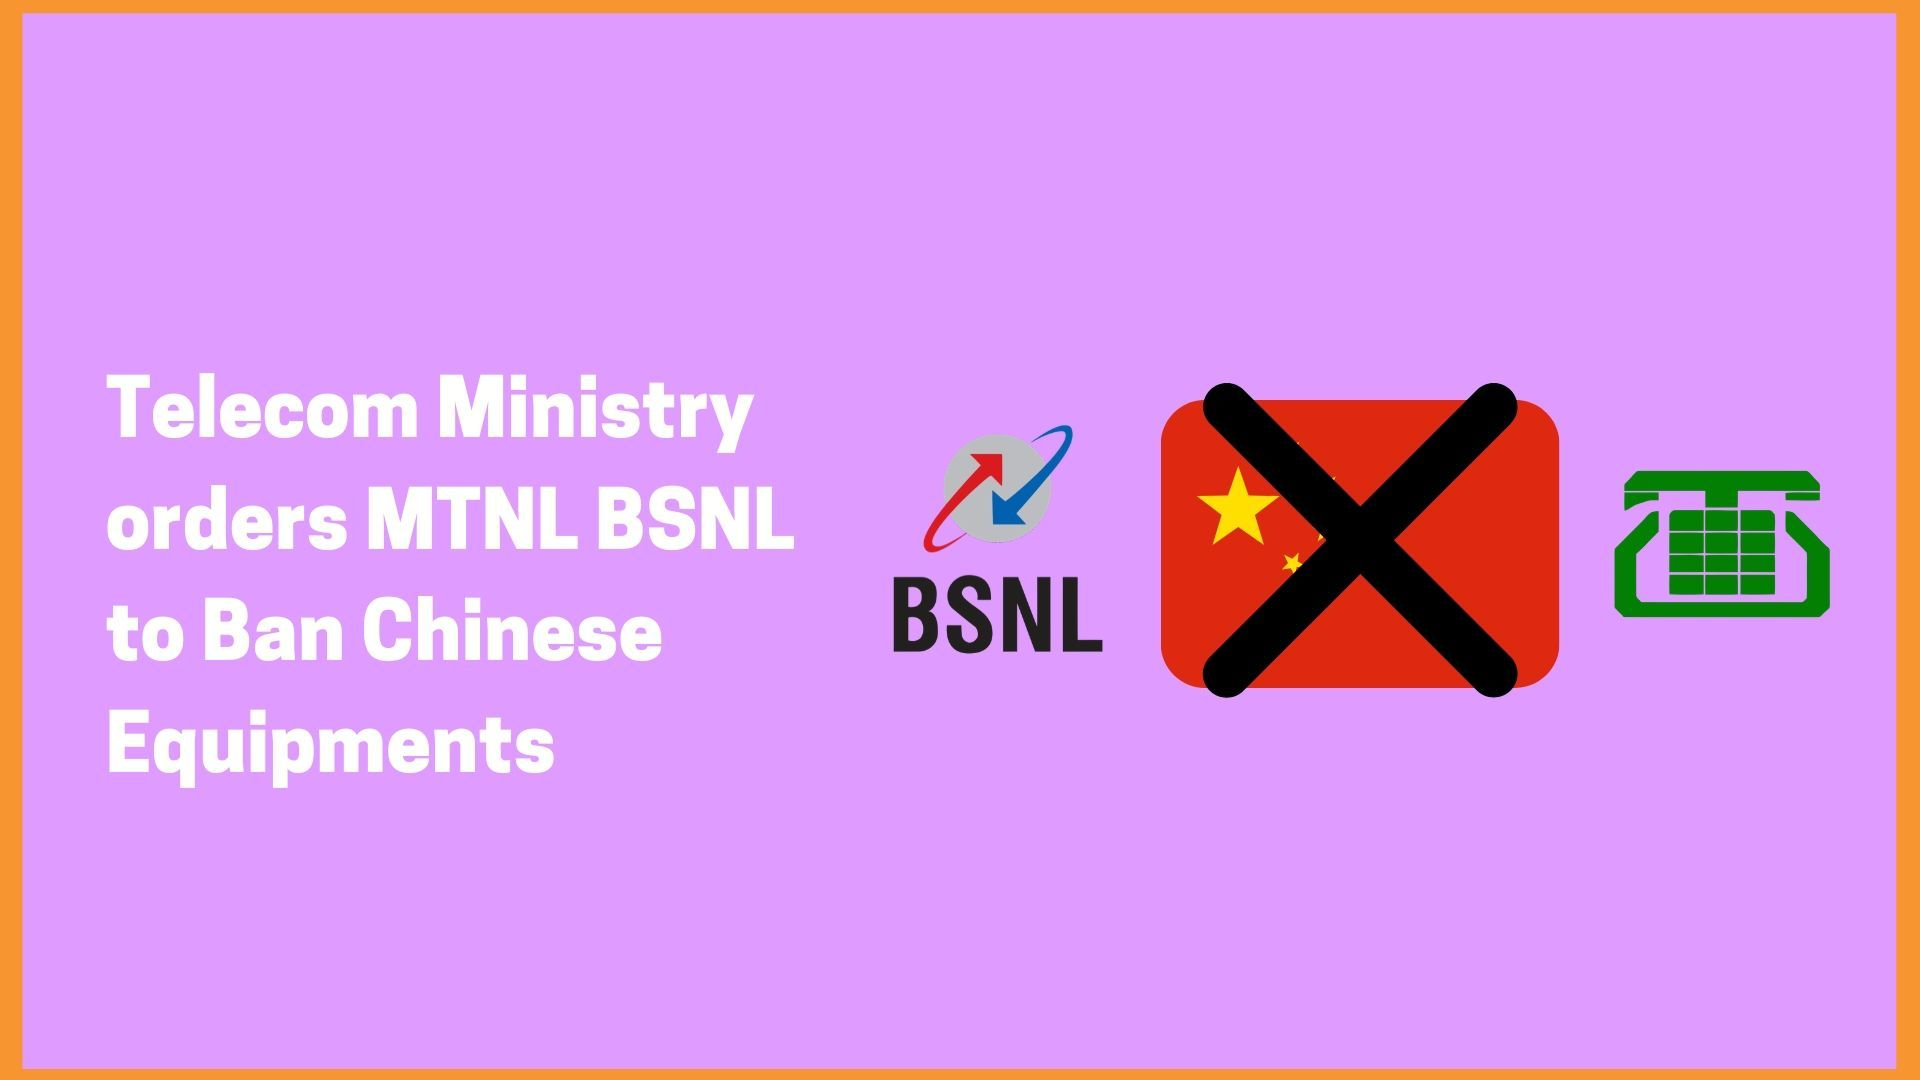 India China Standoff: Telecom Ministry Of India strictly orders MTNL BSNL to Ban Chinese Equipments